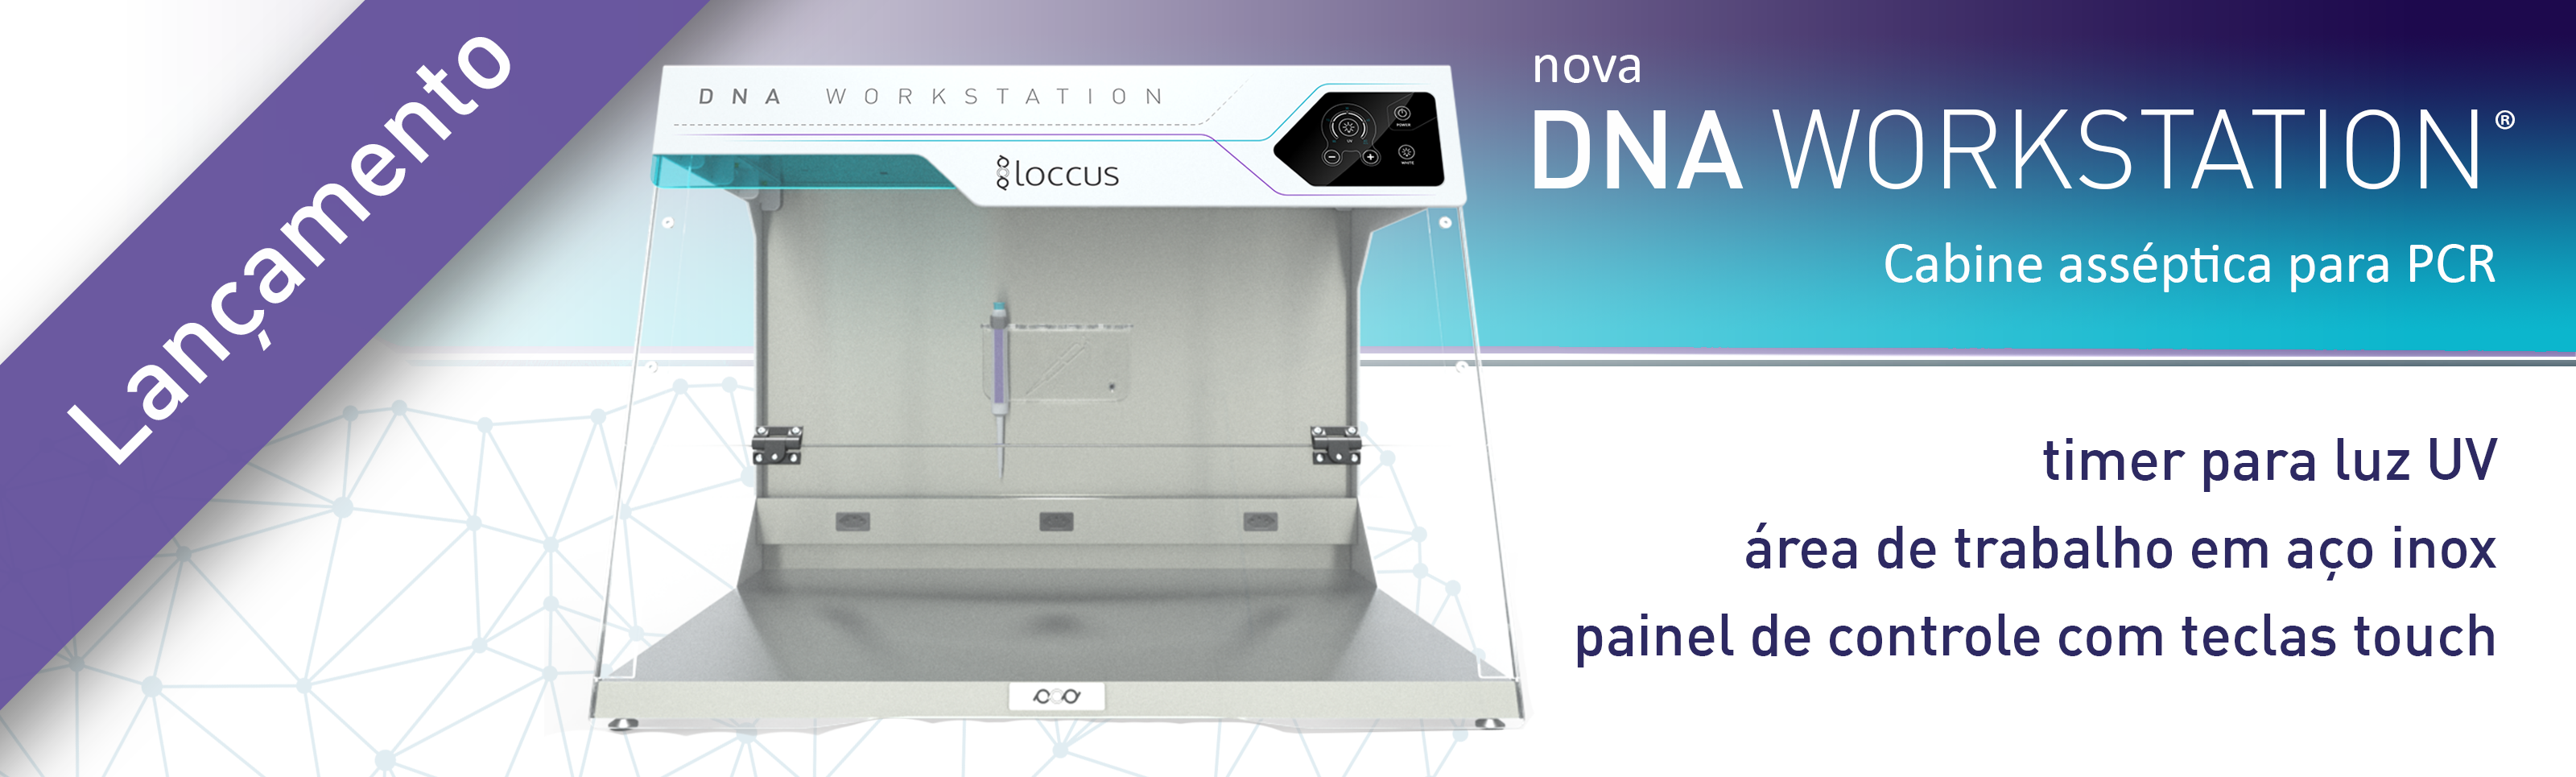 Banner nova DNA WORKSTATION2